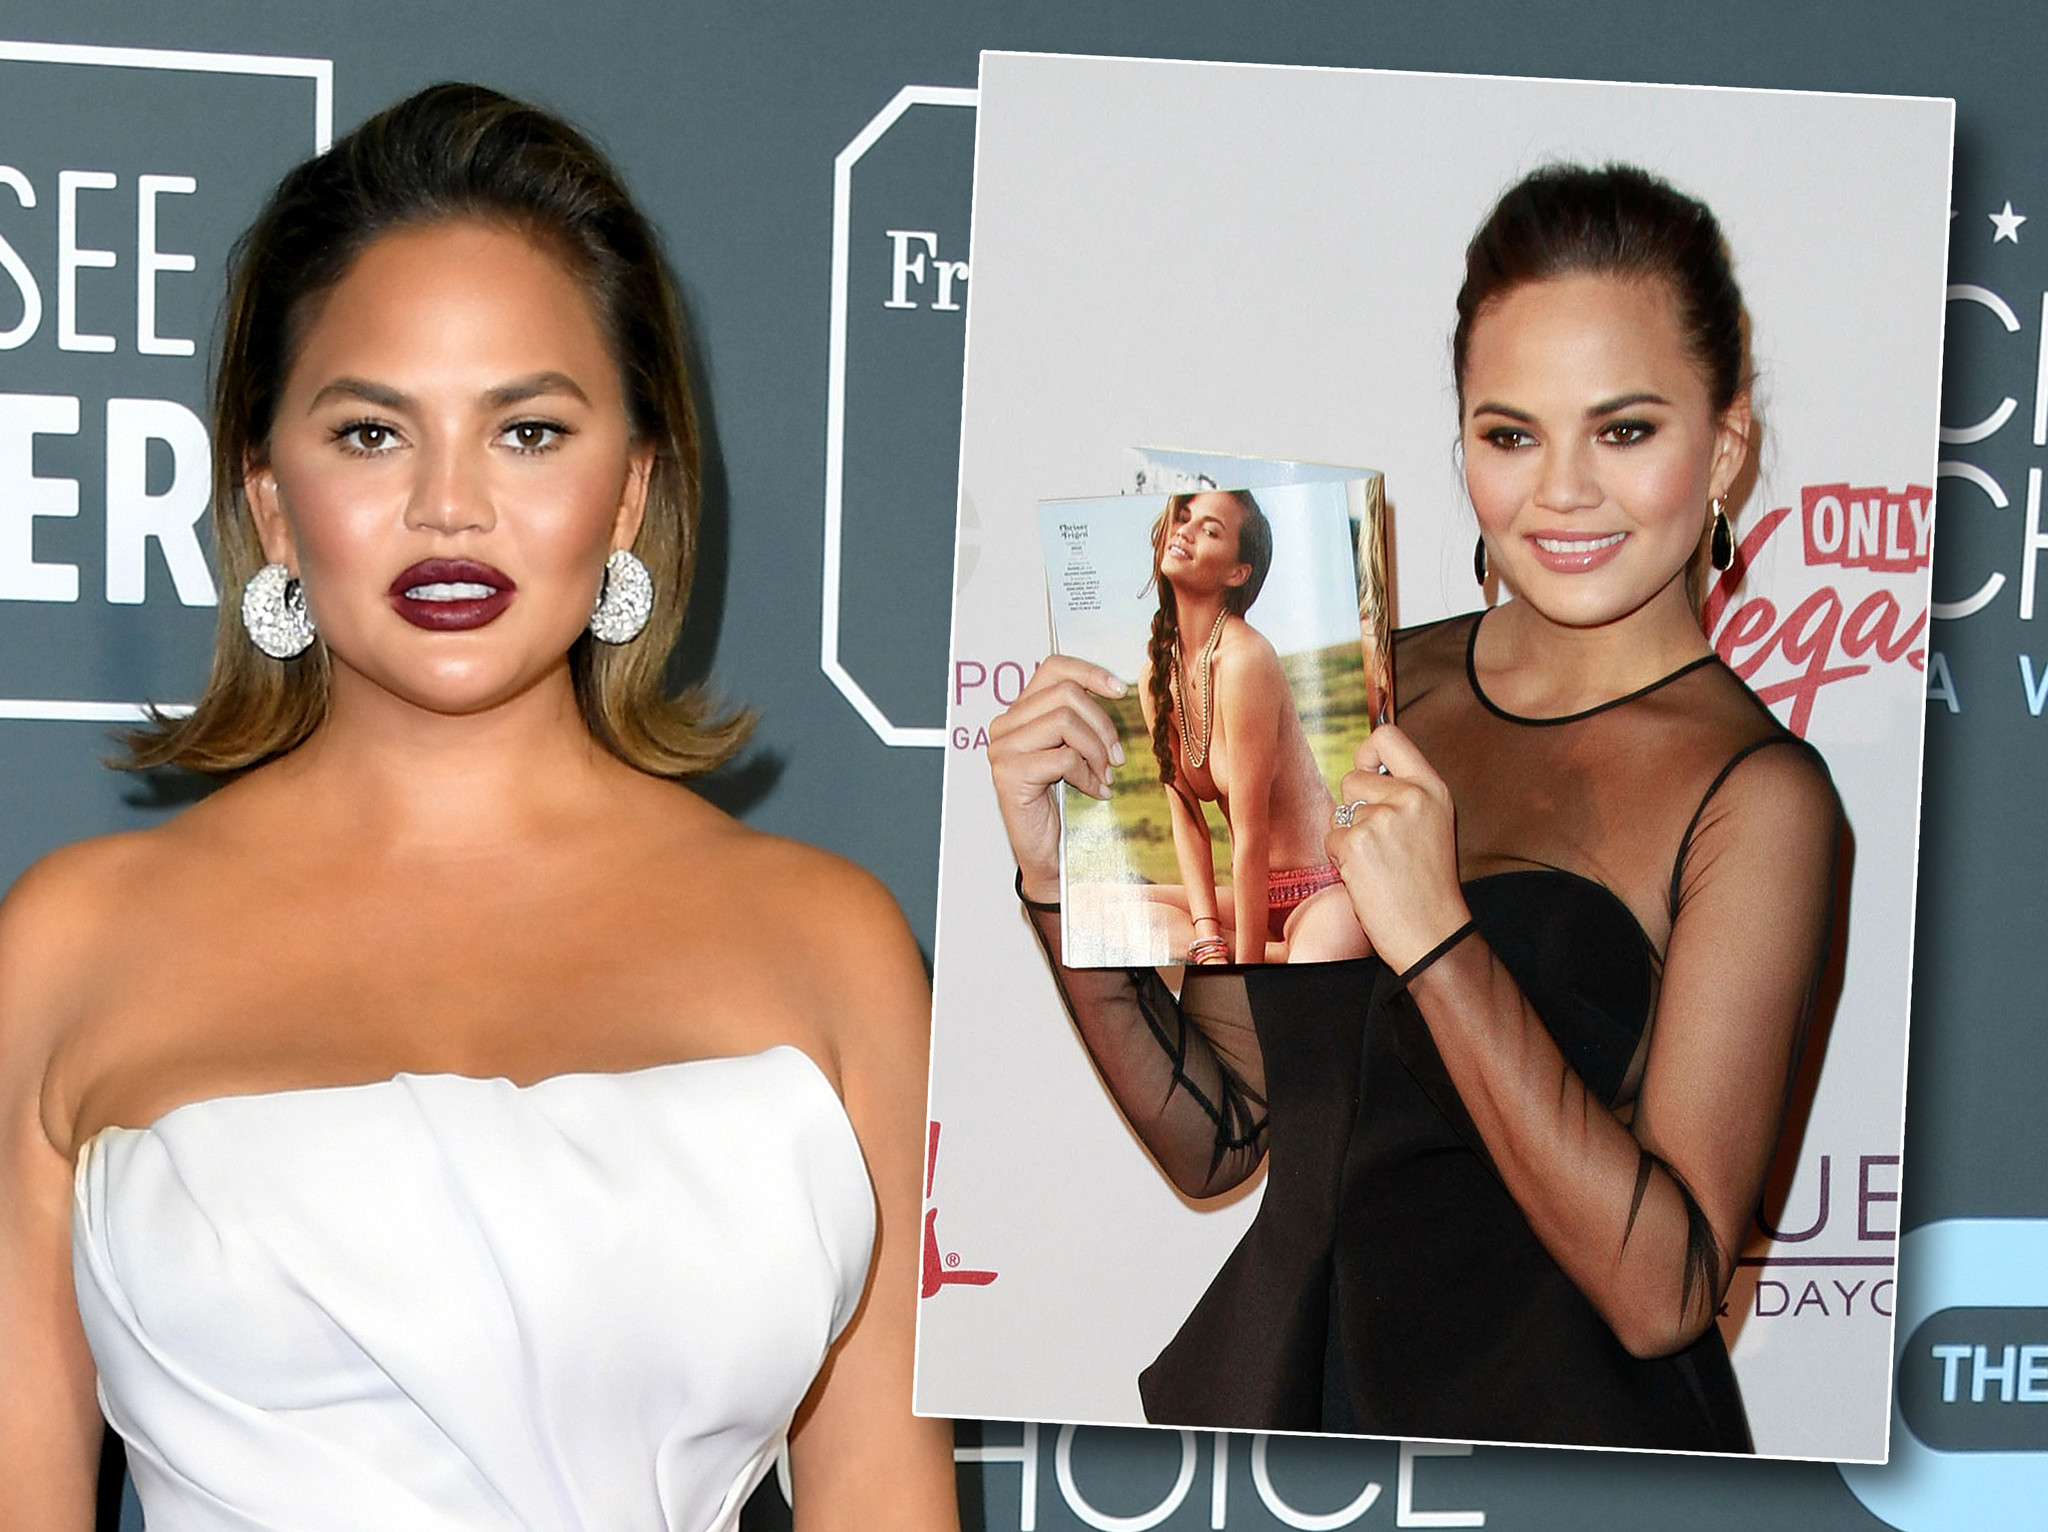 Chrissy Teigen regrets boob job she got for 'swimsuit' gig: 'I want them out now!'